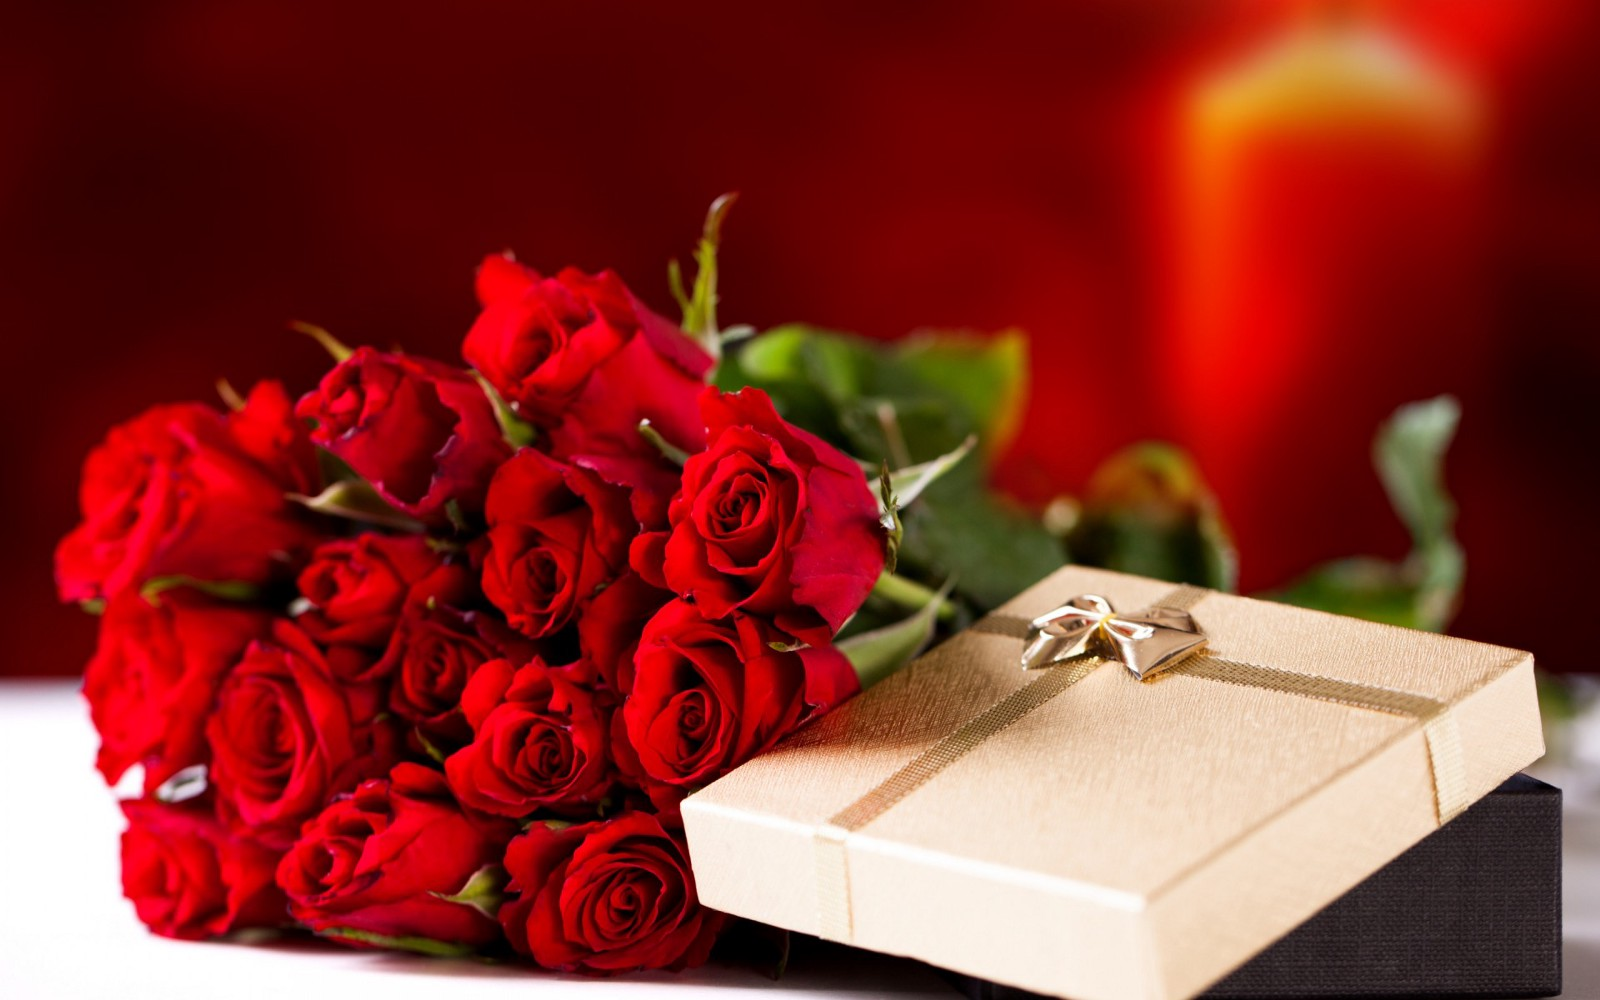 Valentines gift ideas for couples special offer for valentines winni provides excellent bouquets and service at extremely reasonable prices so send beautiful flower bouquet to loved ones and make your valentine izmirmasajfo